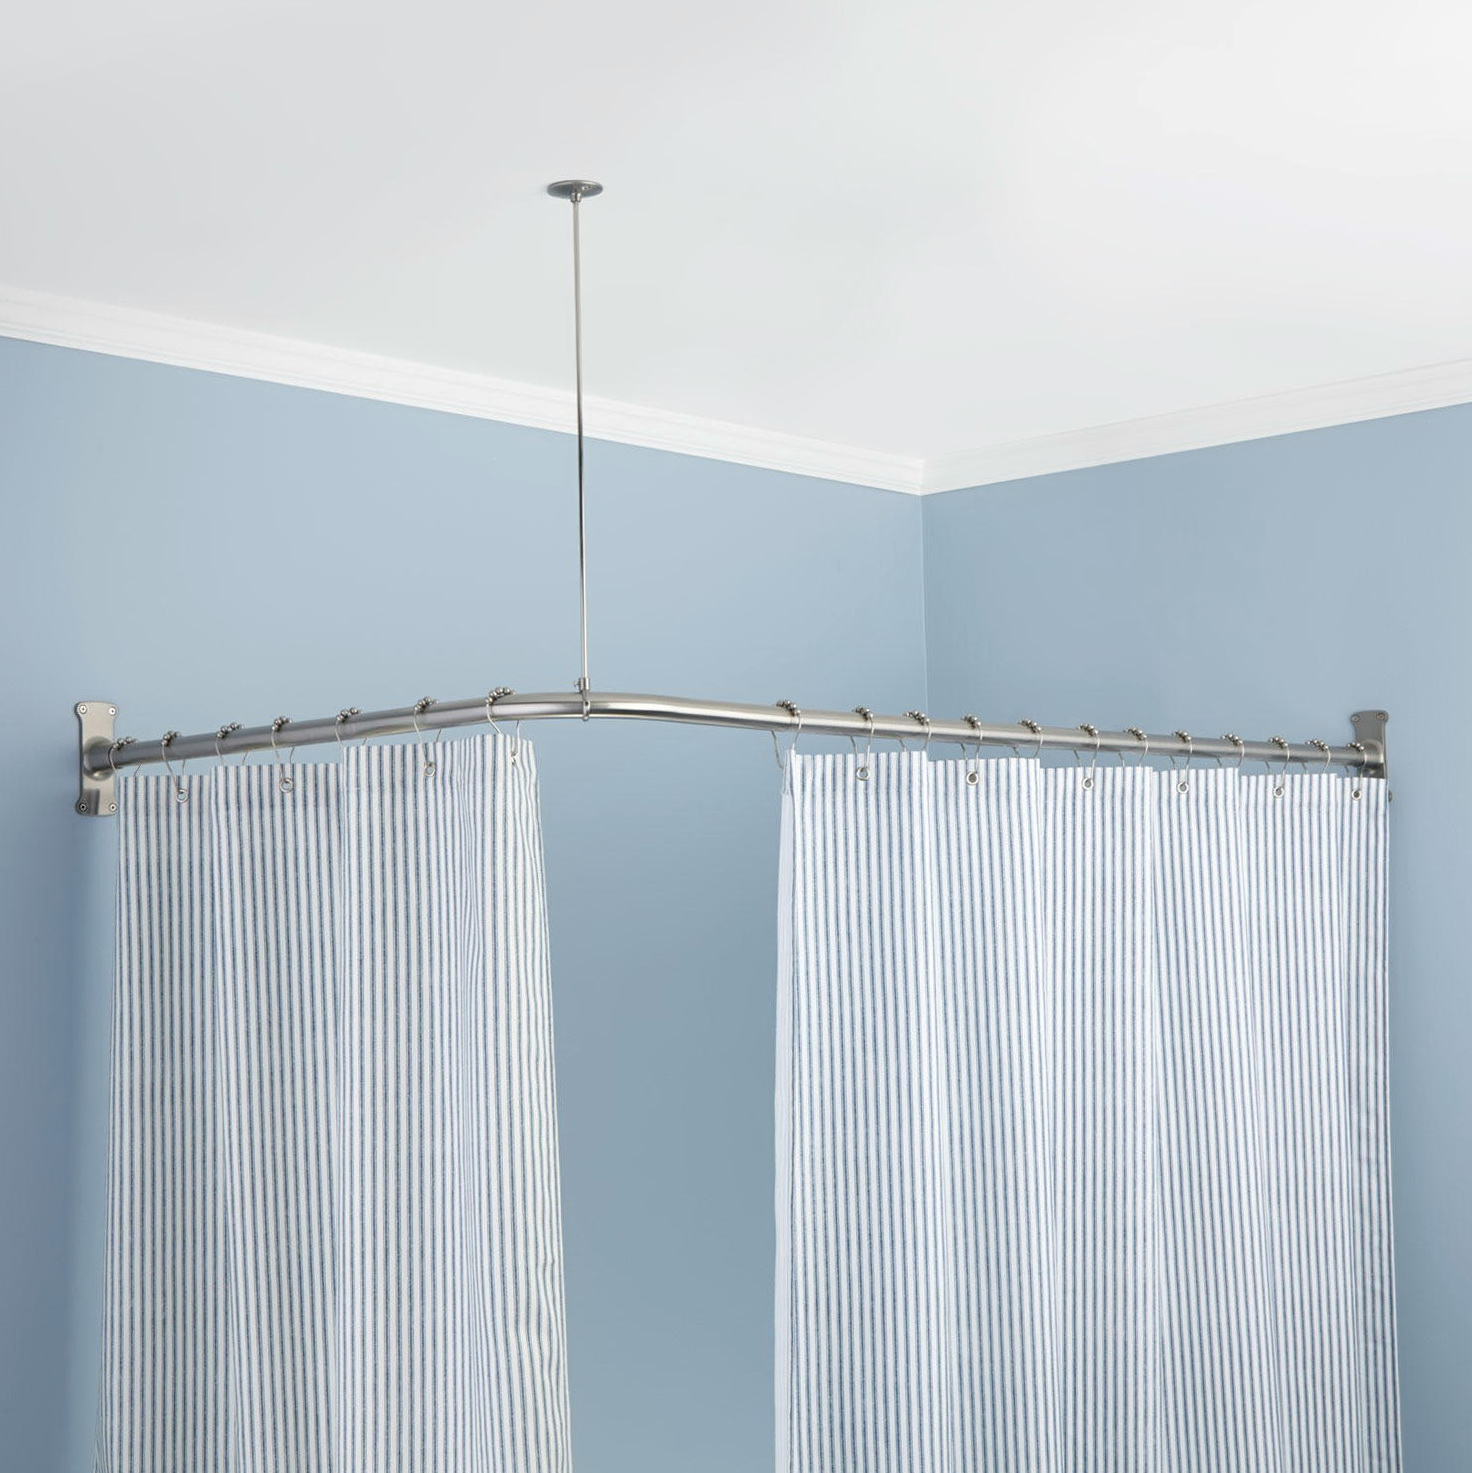 brushed home luxury depot l collection rods of rod by appealing nickel shower corner glacier cool curtain bay interior shaped